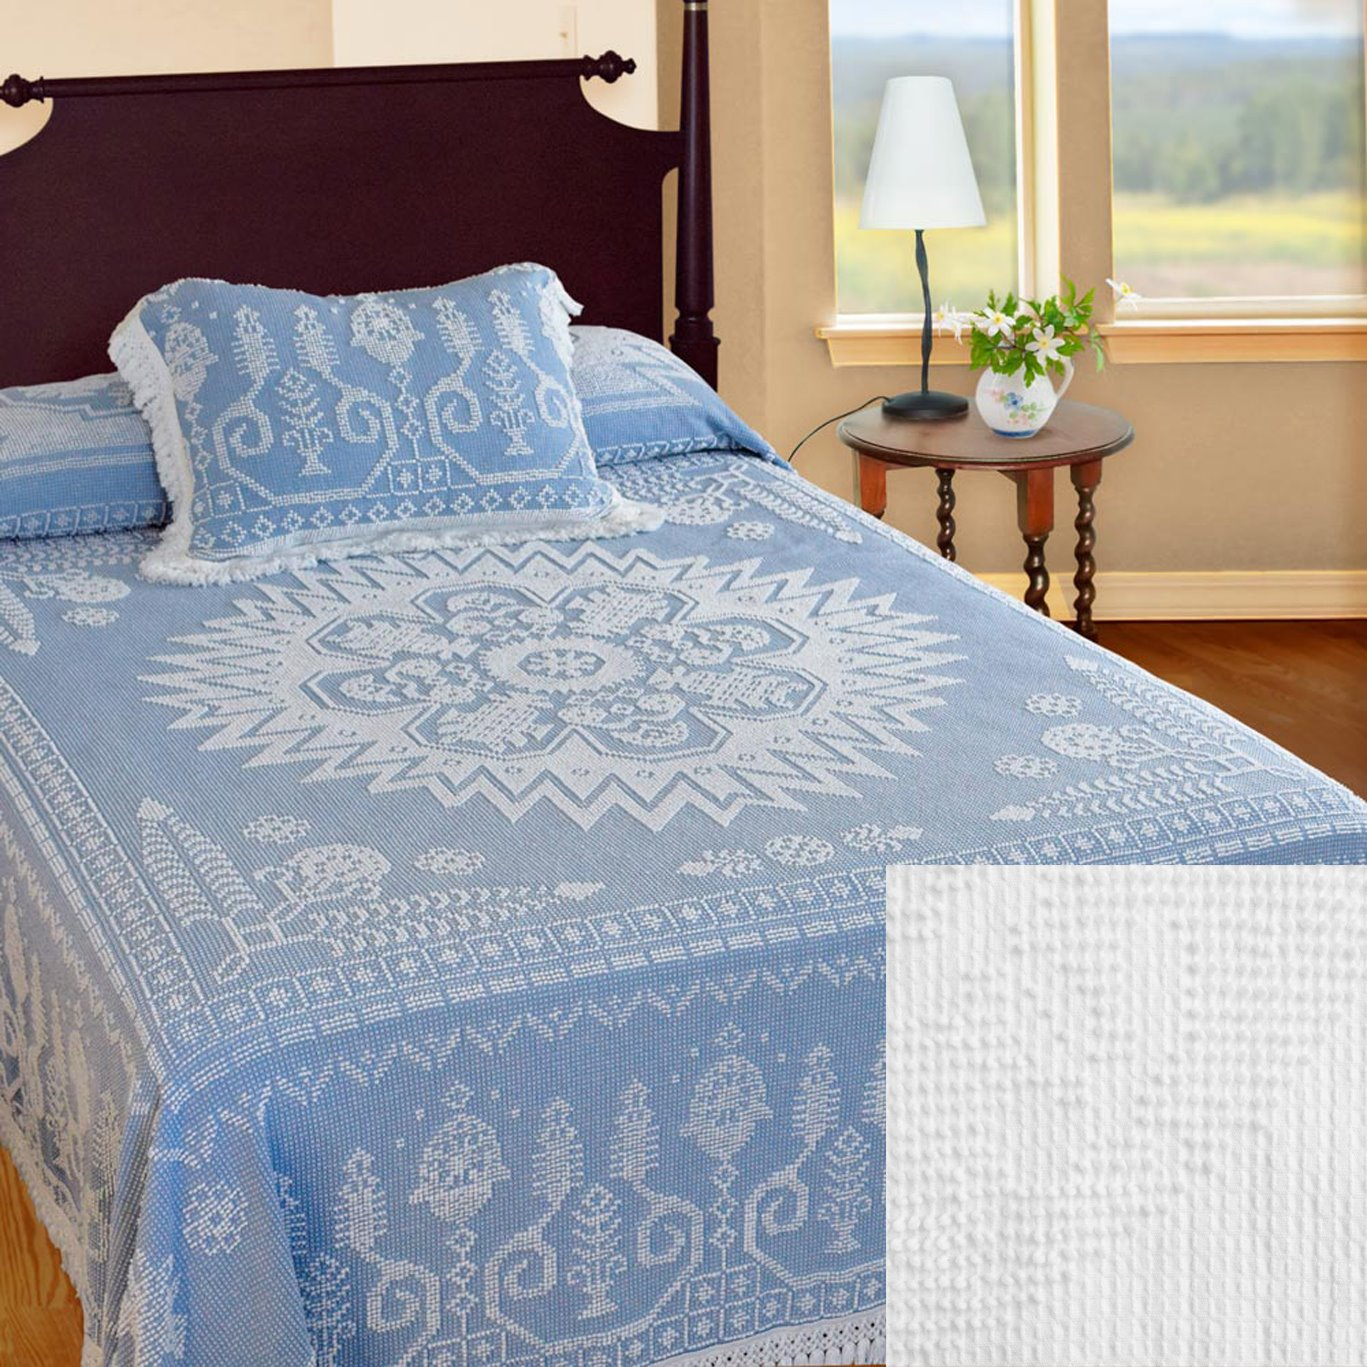 Spirit of America Bedspread King White